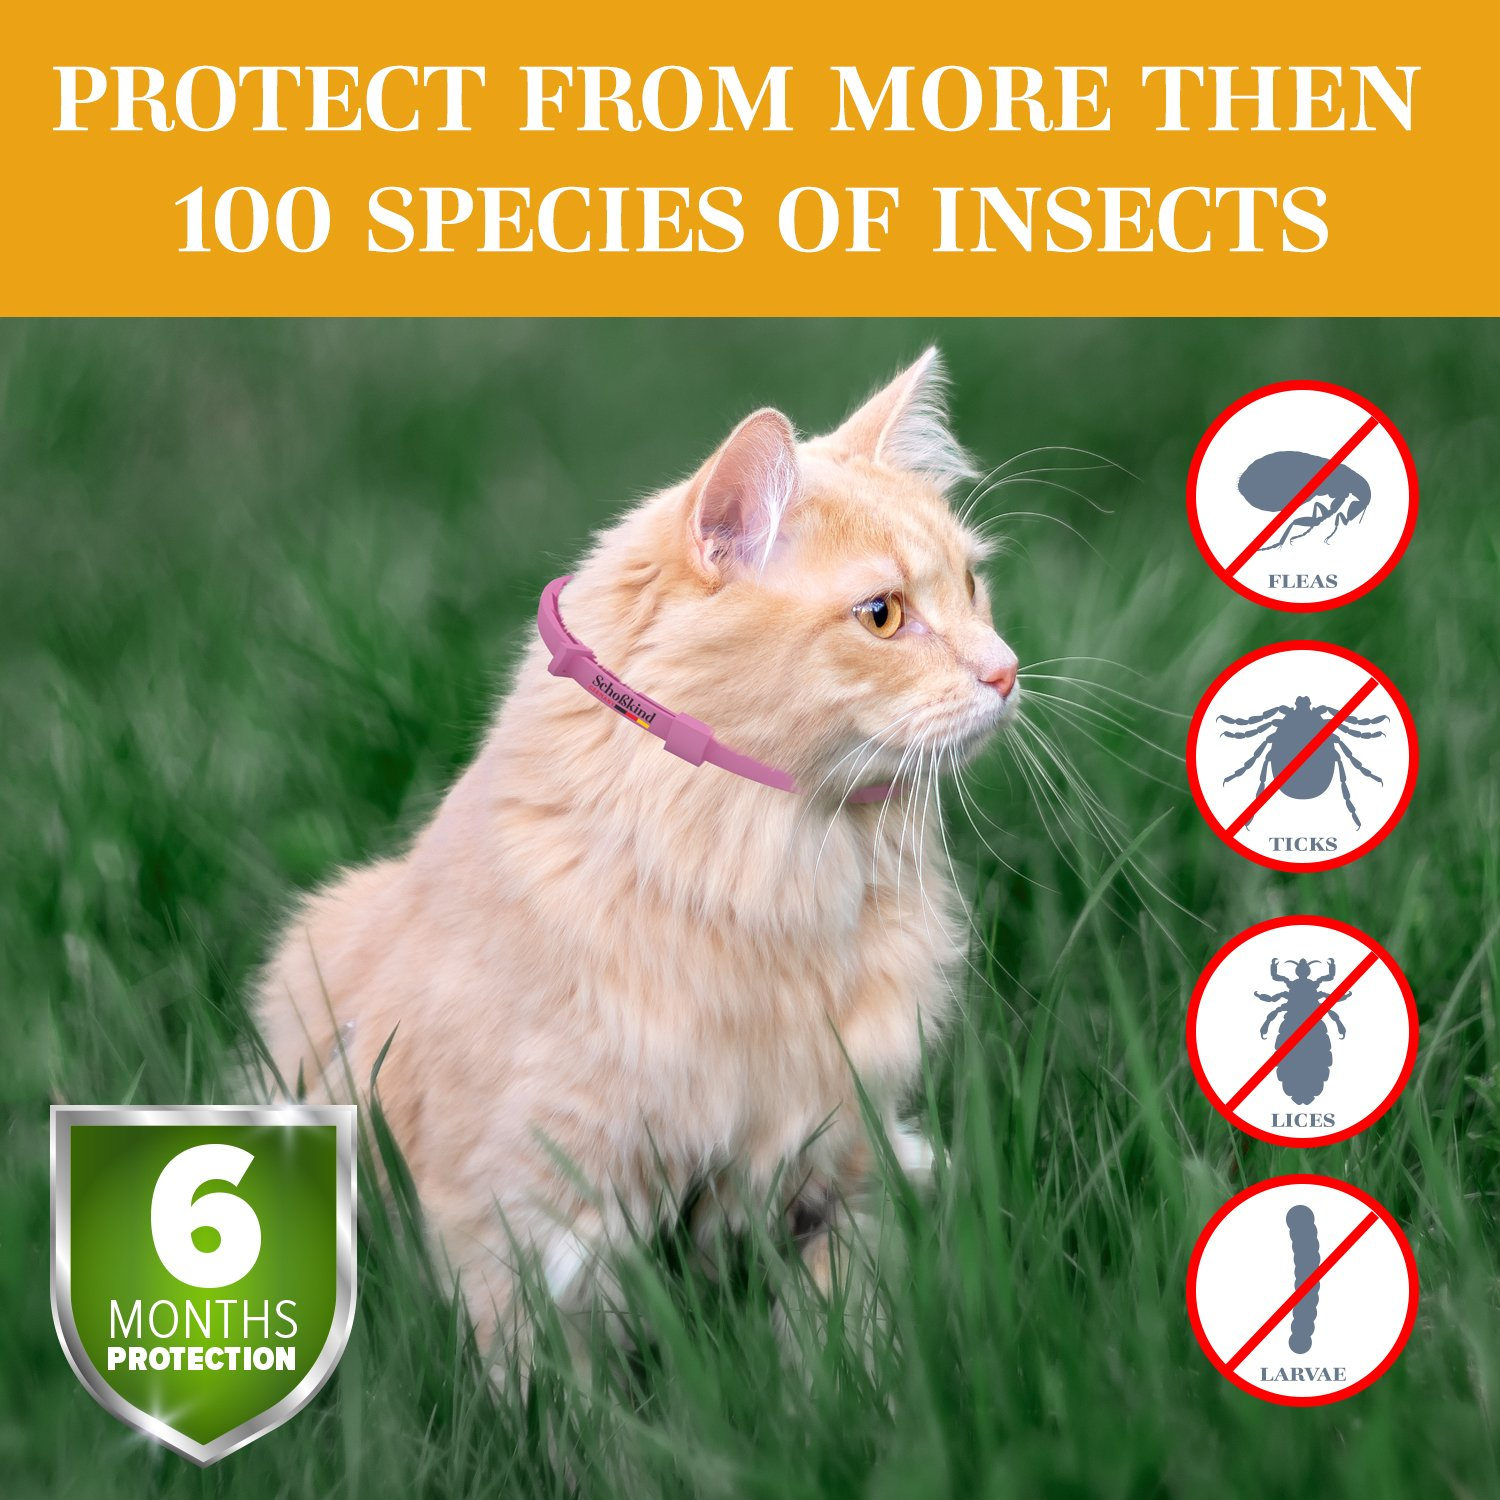 Flea Collar - Tick Collar for Cats - Made for Germany - 100% Safe & Eco-Friendly - Based on Natural Oils - Flea and Tick Prevention Pets - 6-Month Protection - Waterproof Cat Flea Collar (Pink) by Organic Way (Image #4)